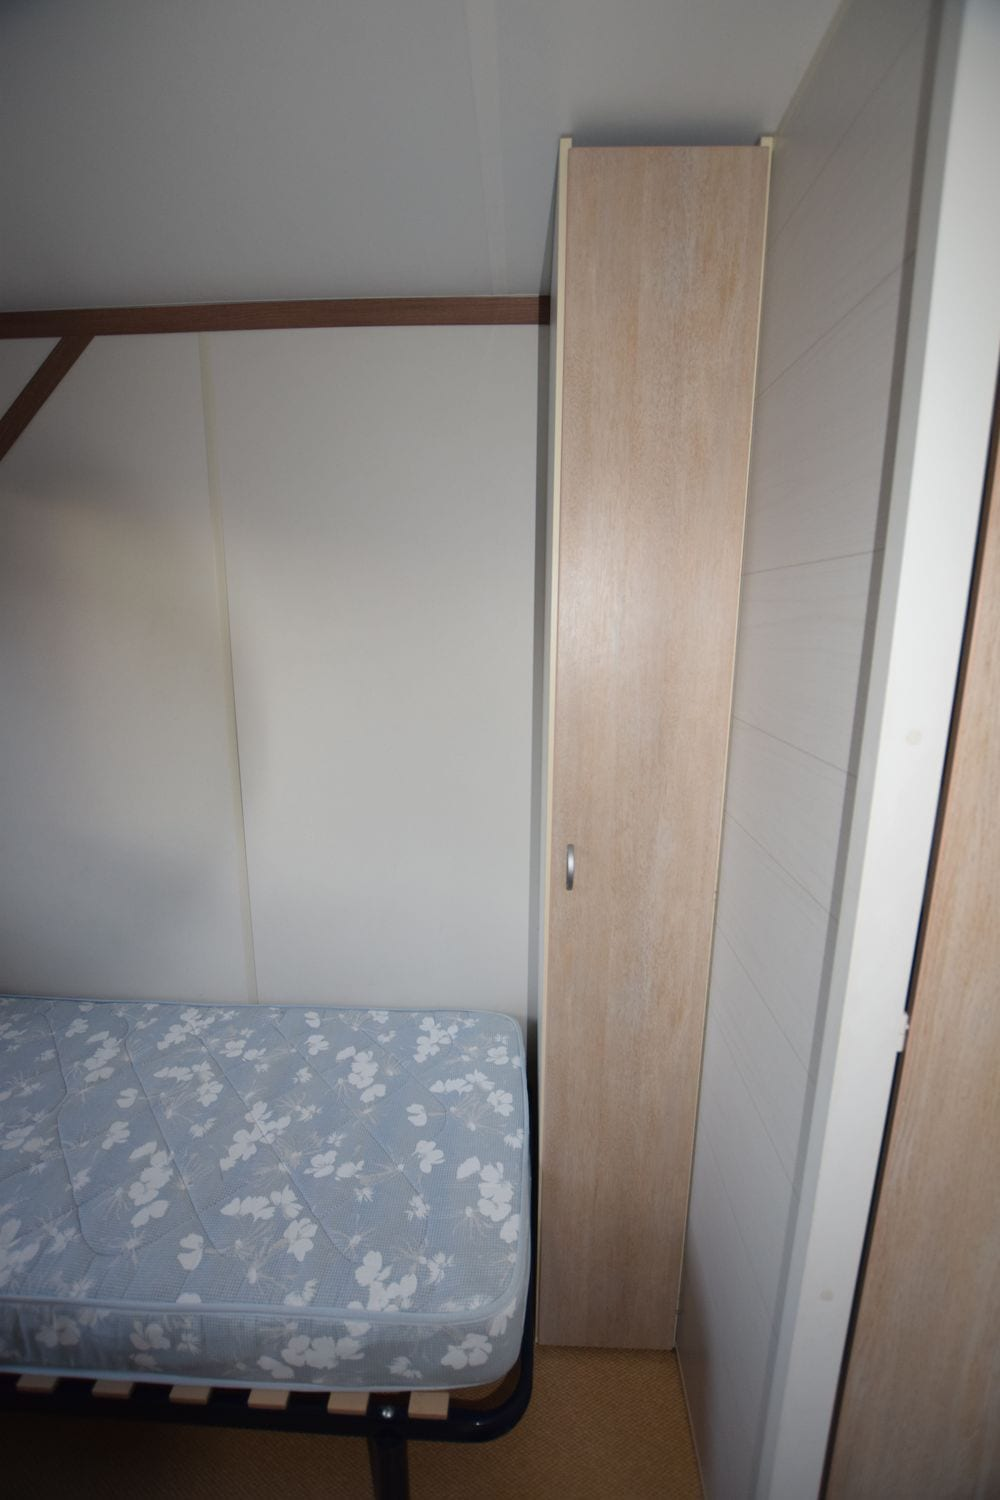 O'hara 7.84 T - 2004 - Mobil home d'occasion - 6 500€ - Zen Mobil homes